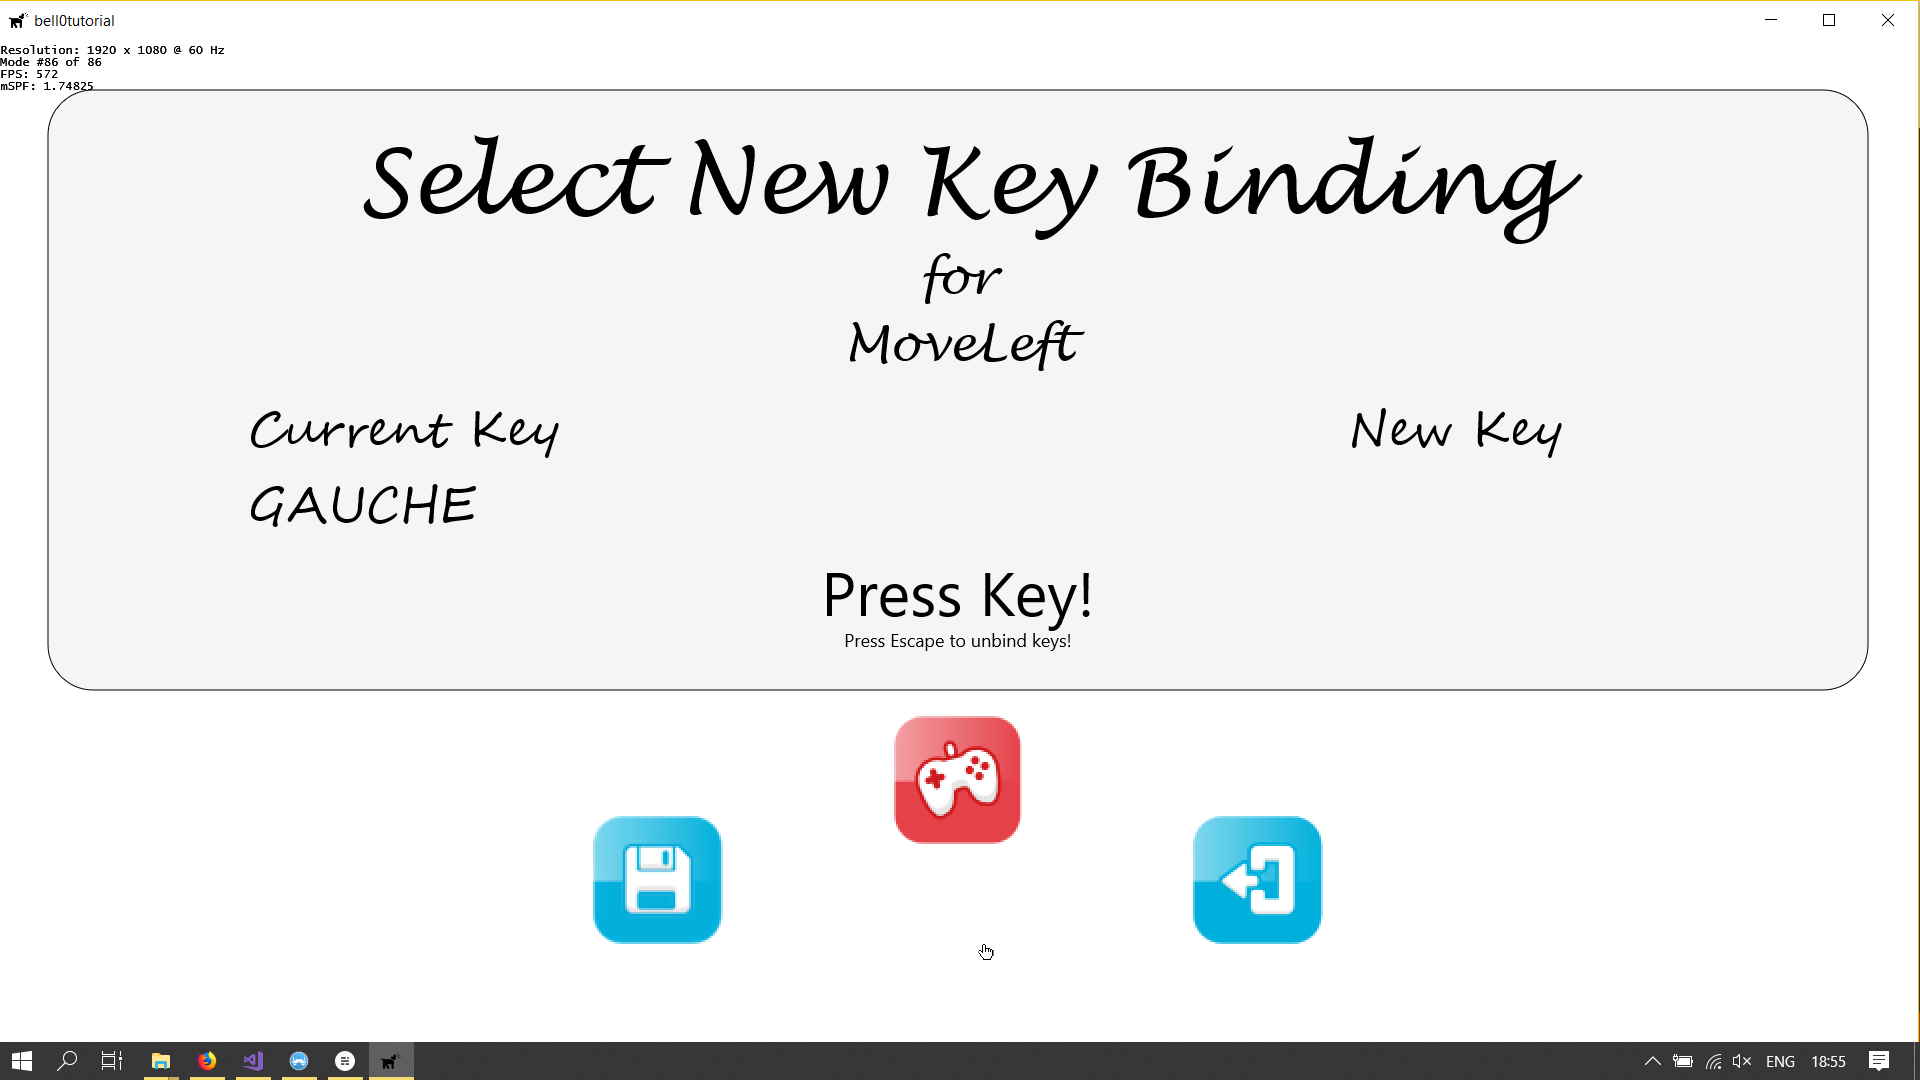 New Key Bindings Menu